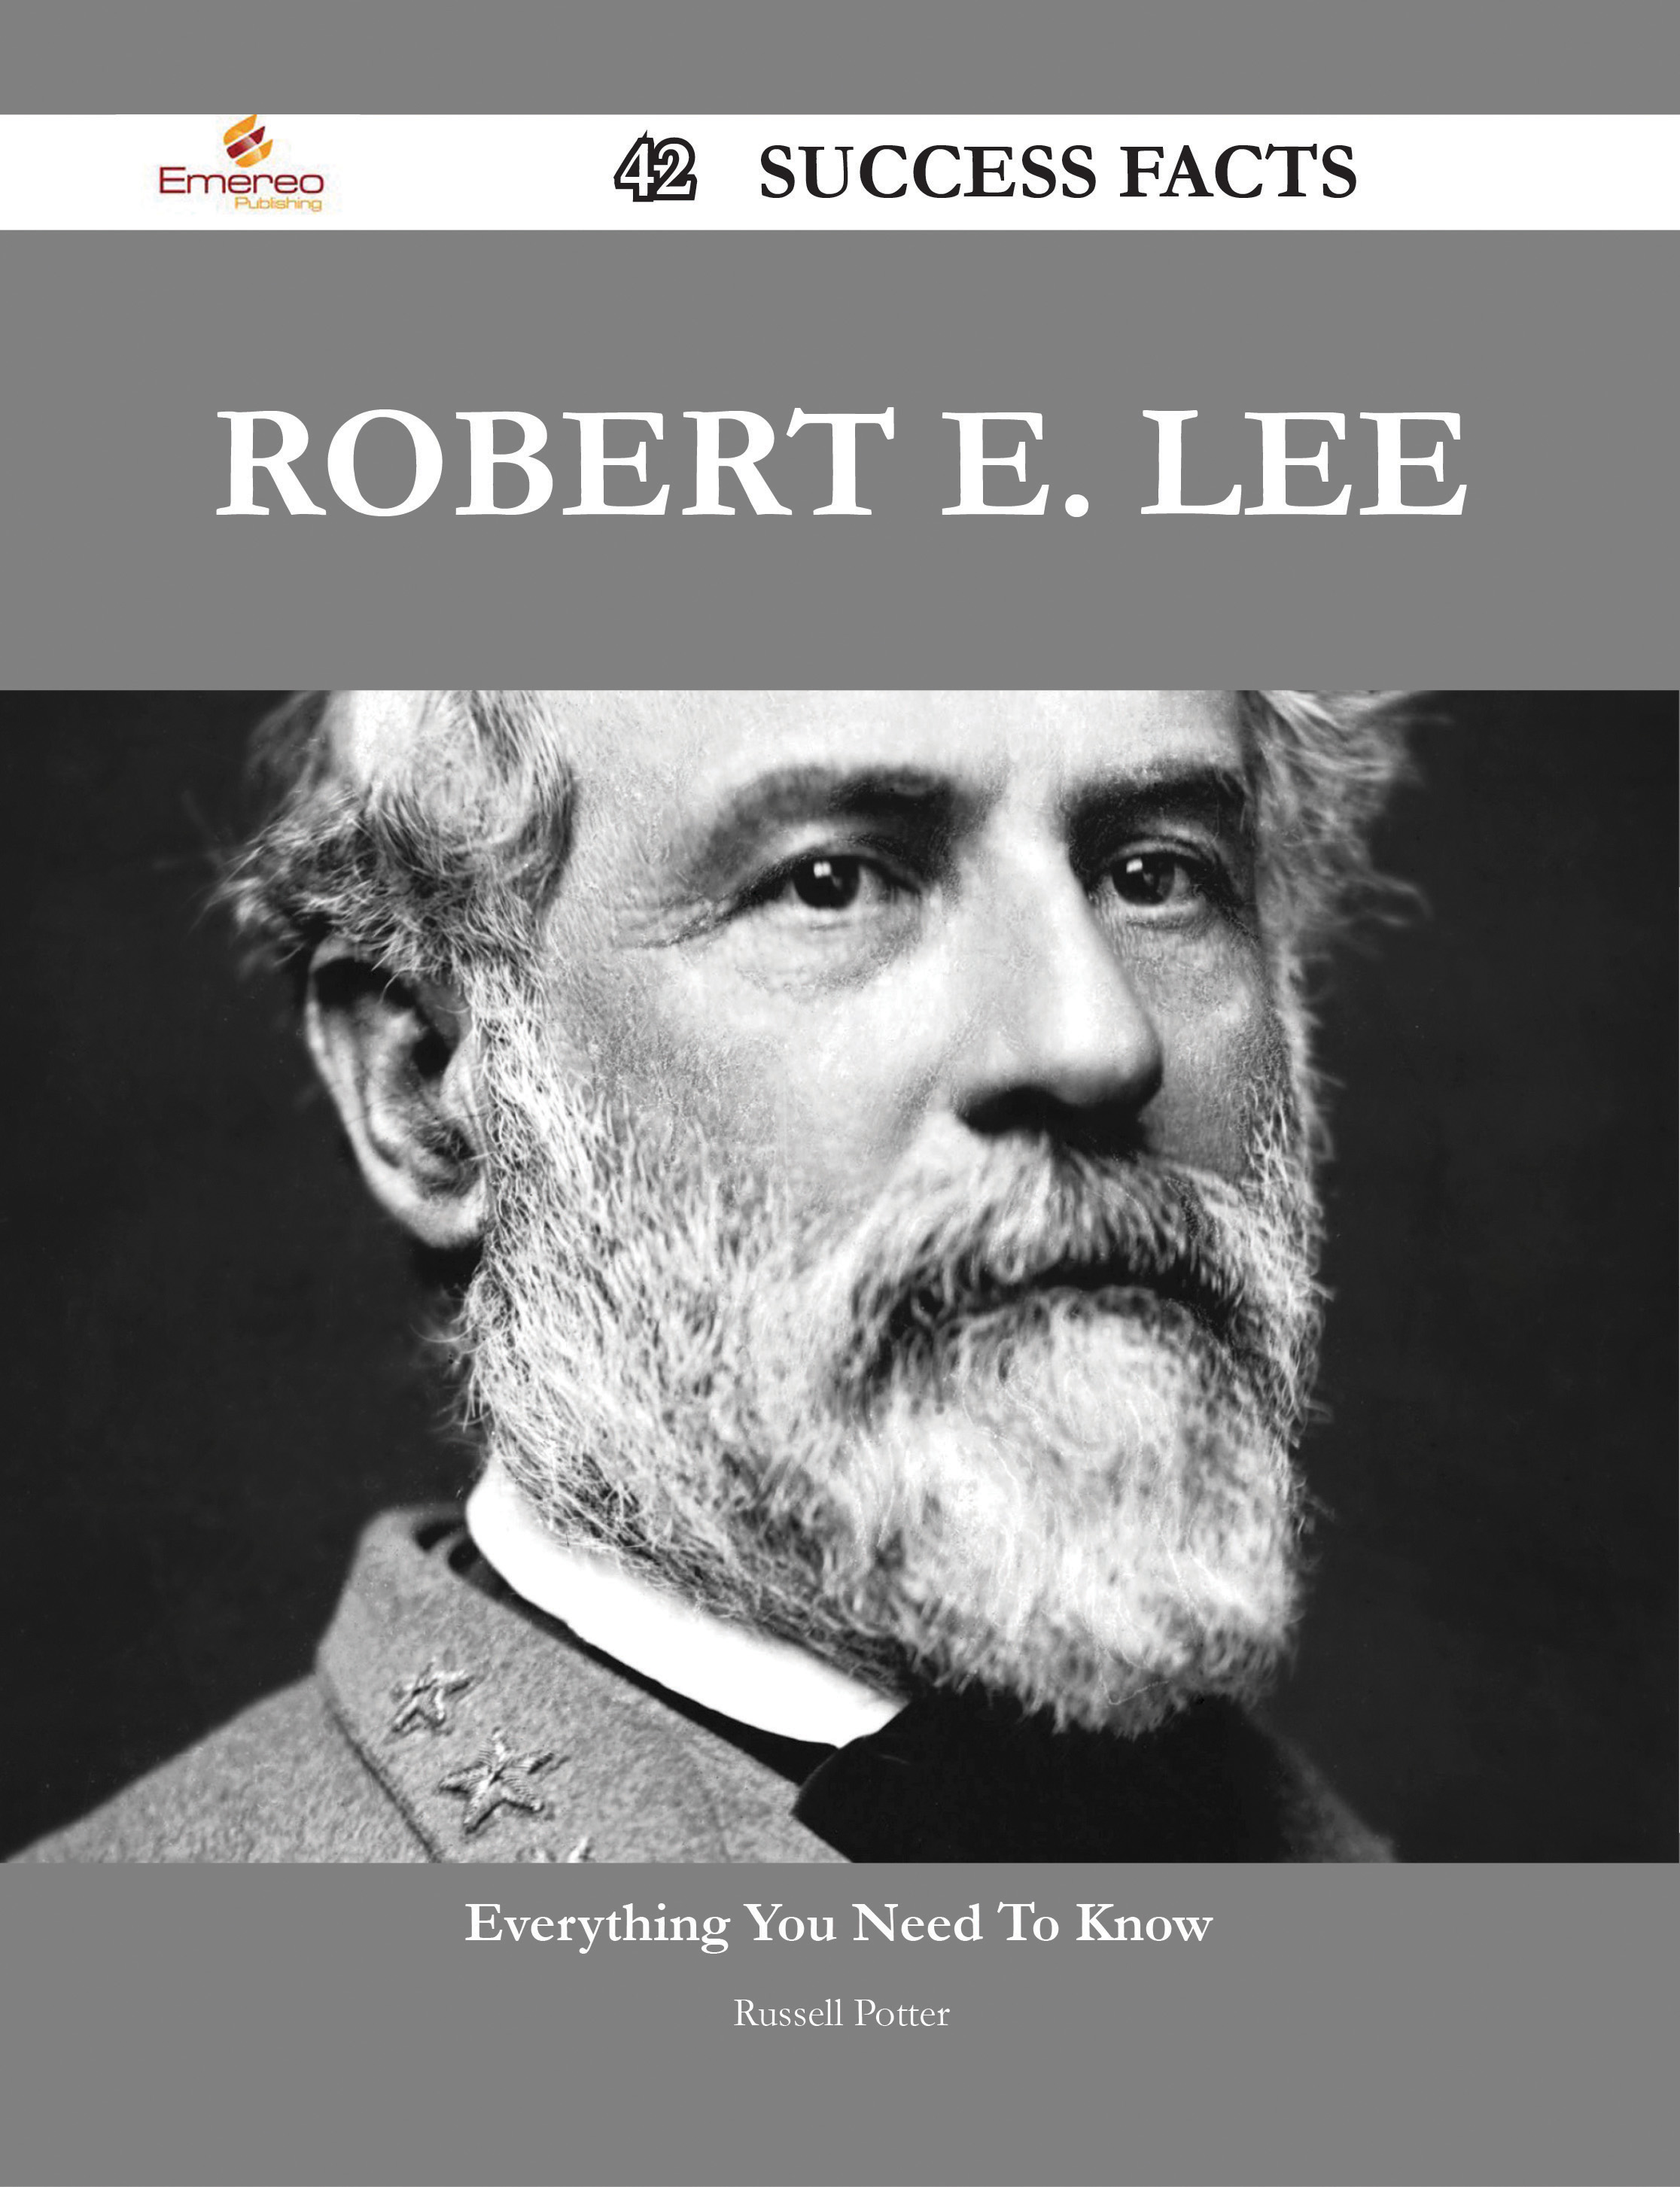 the biography of robert e lee